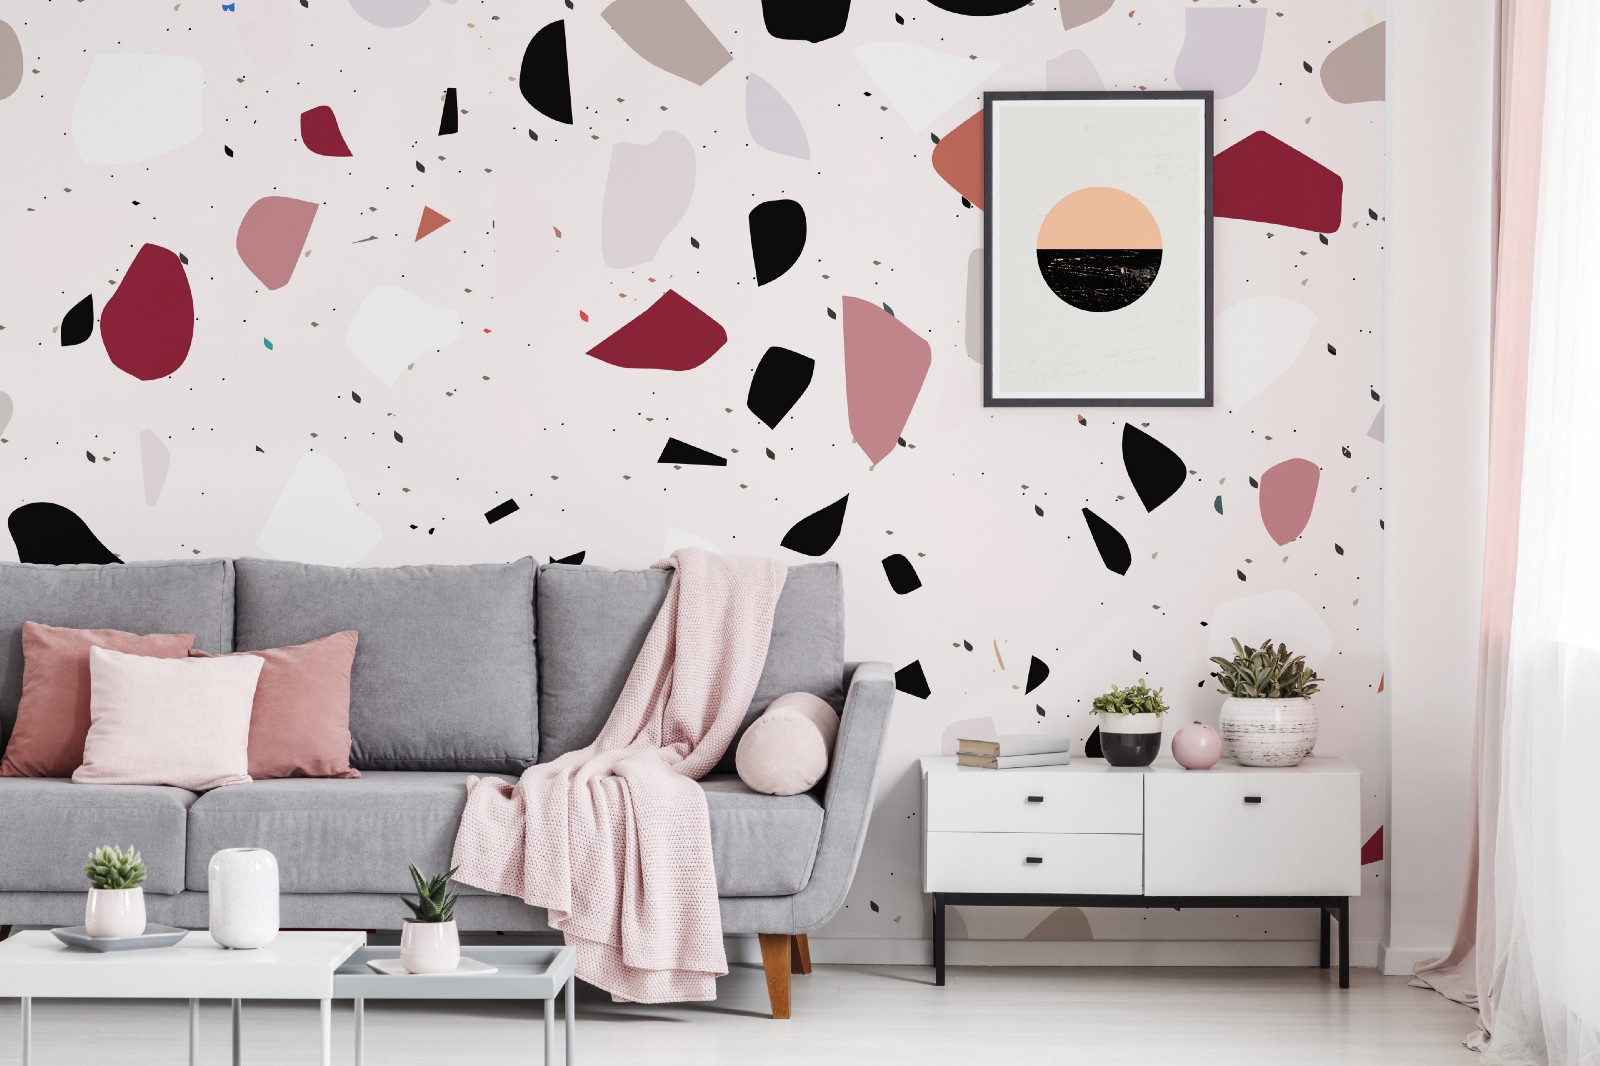 The pinkish living room inpsiration by pixers